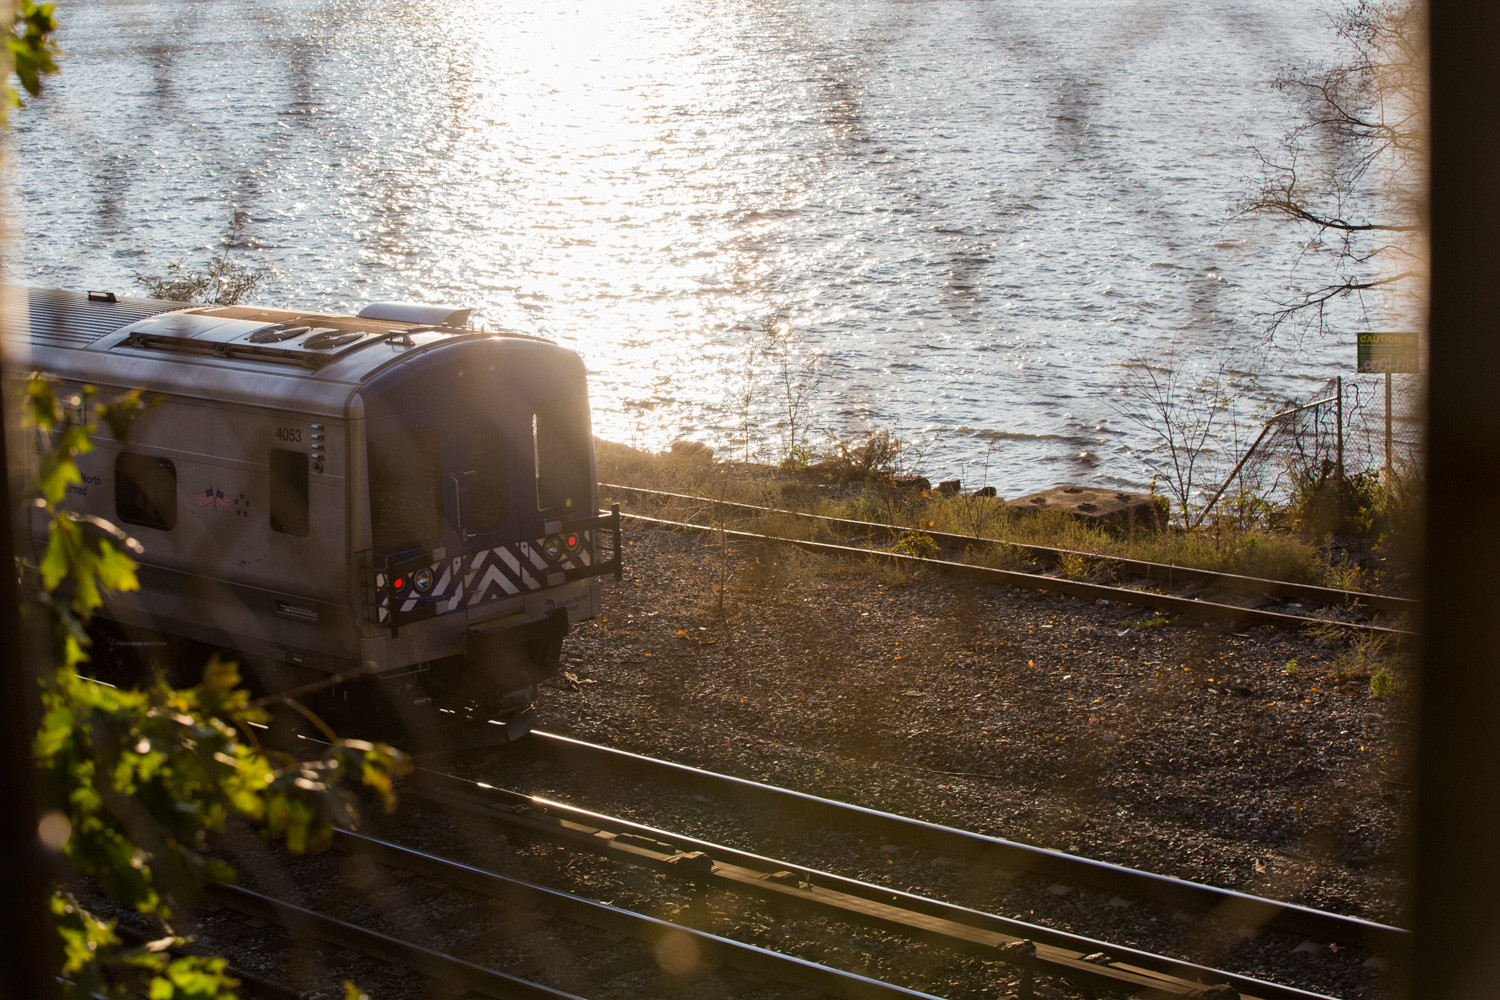 A train traveling along the Hudson River approaches Yonkers as seen from the College of Mount Saint Vincent.